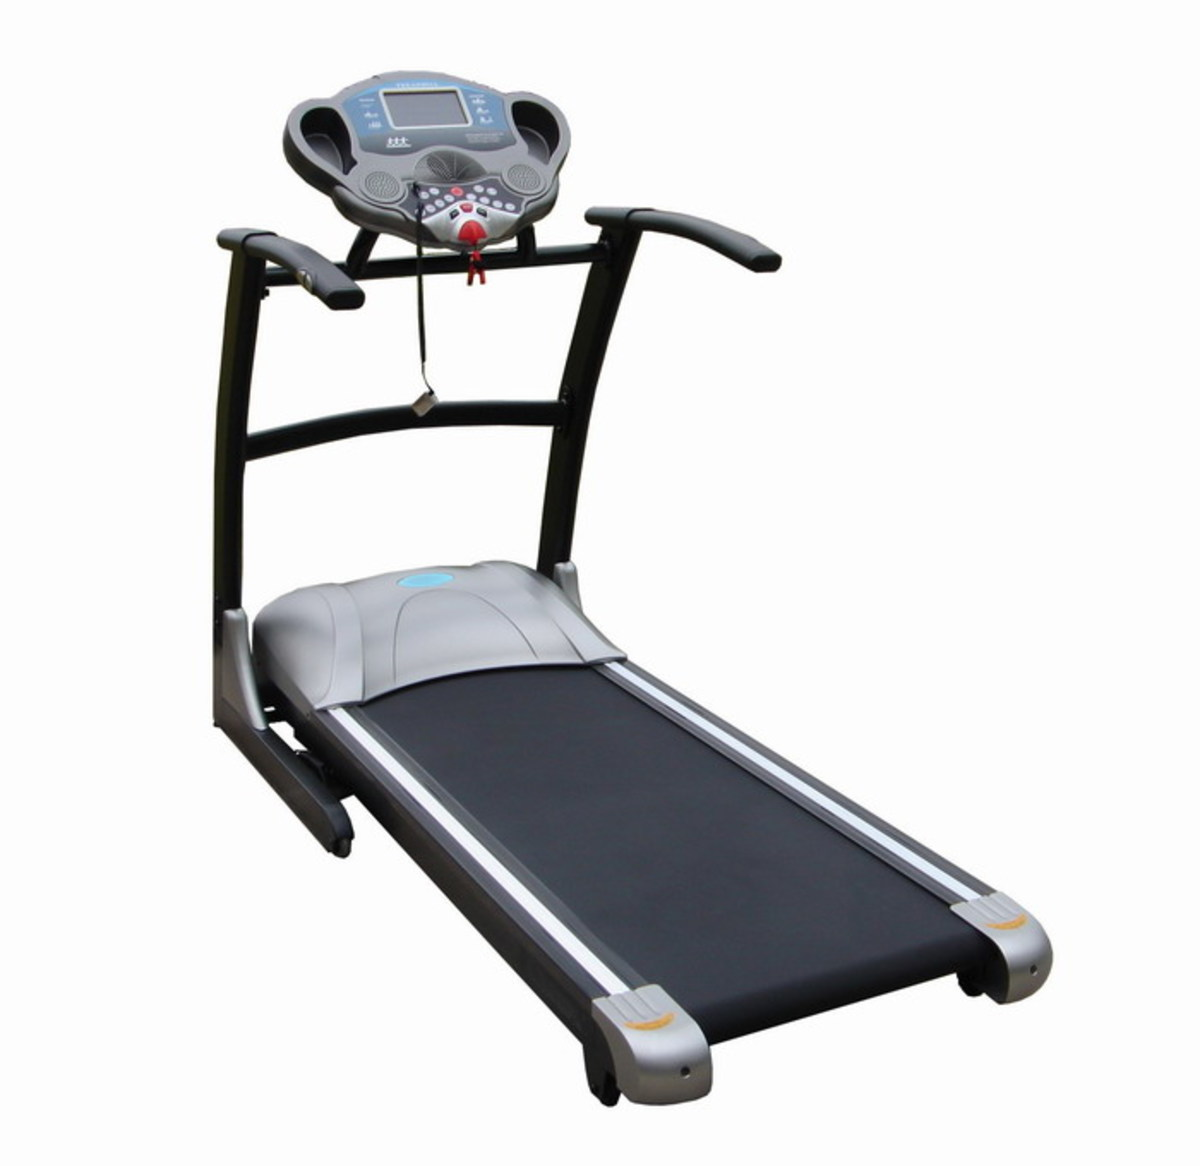 Choosing the Best Home Treadmill - The Top 5 Features